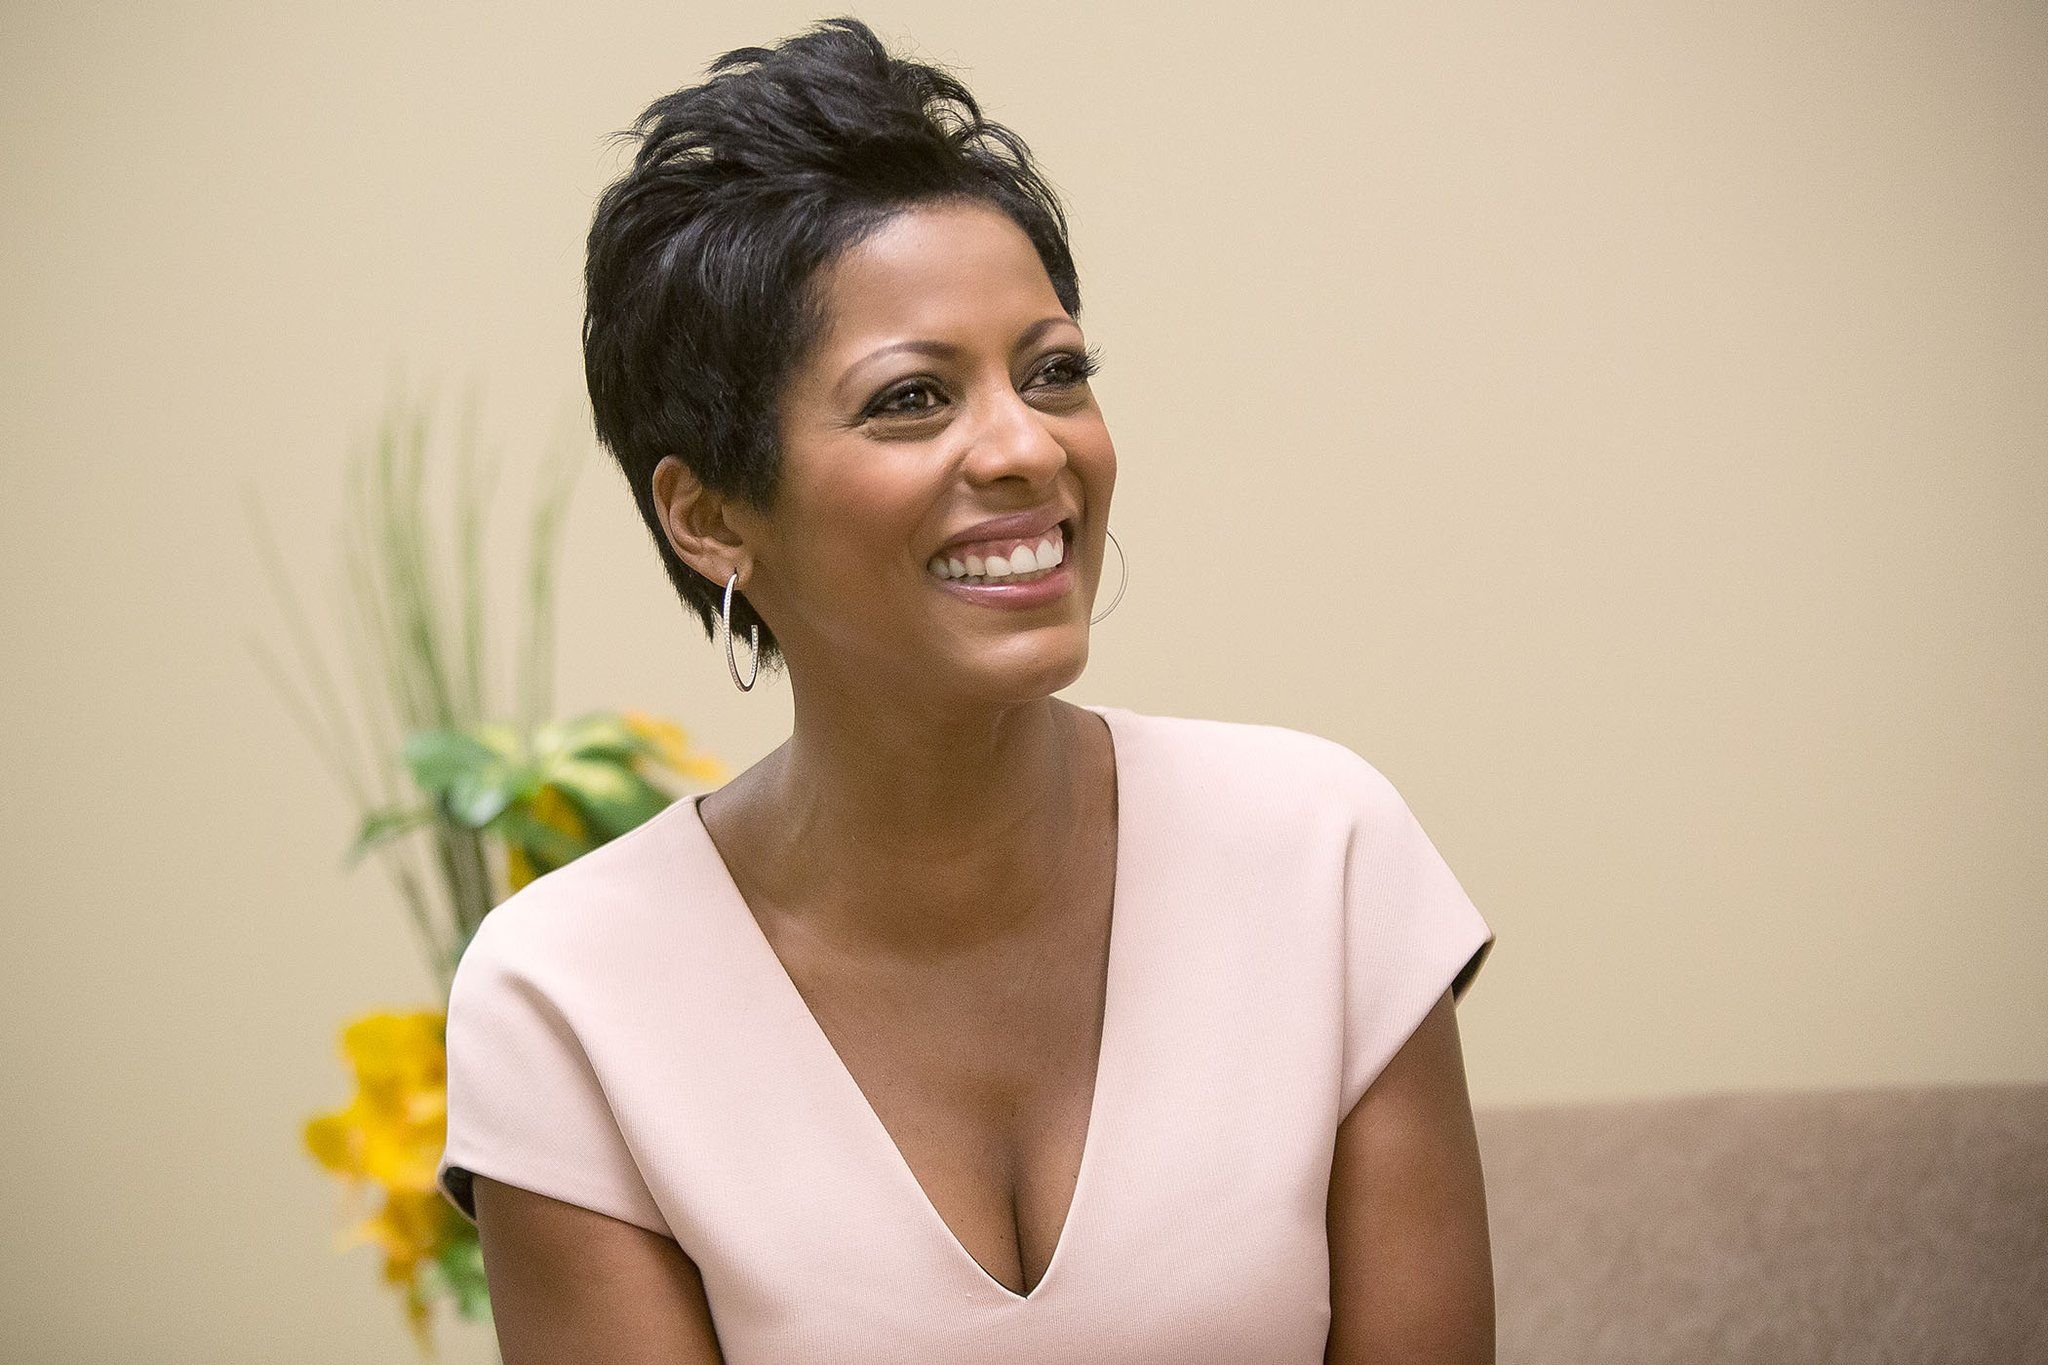 Tamron hall dating lawrence o'donnell 2014